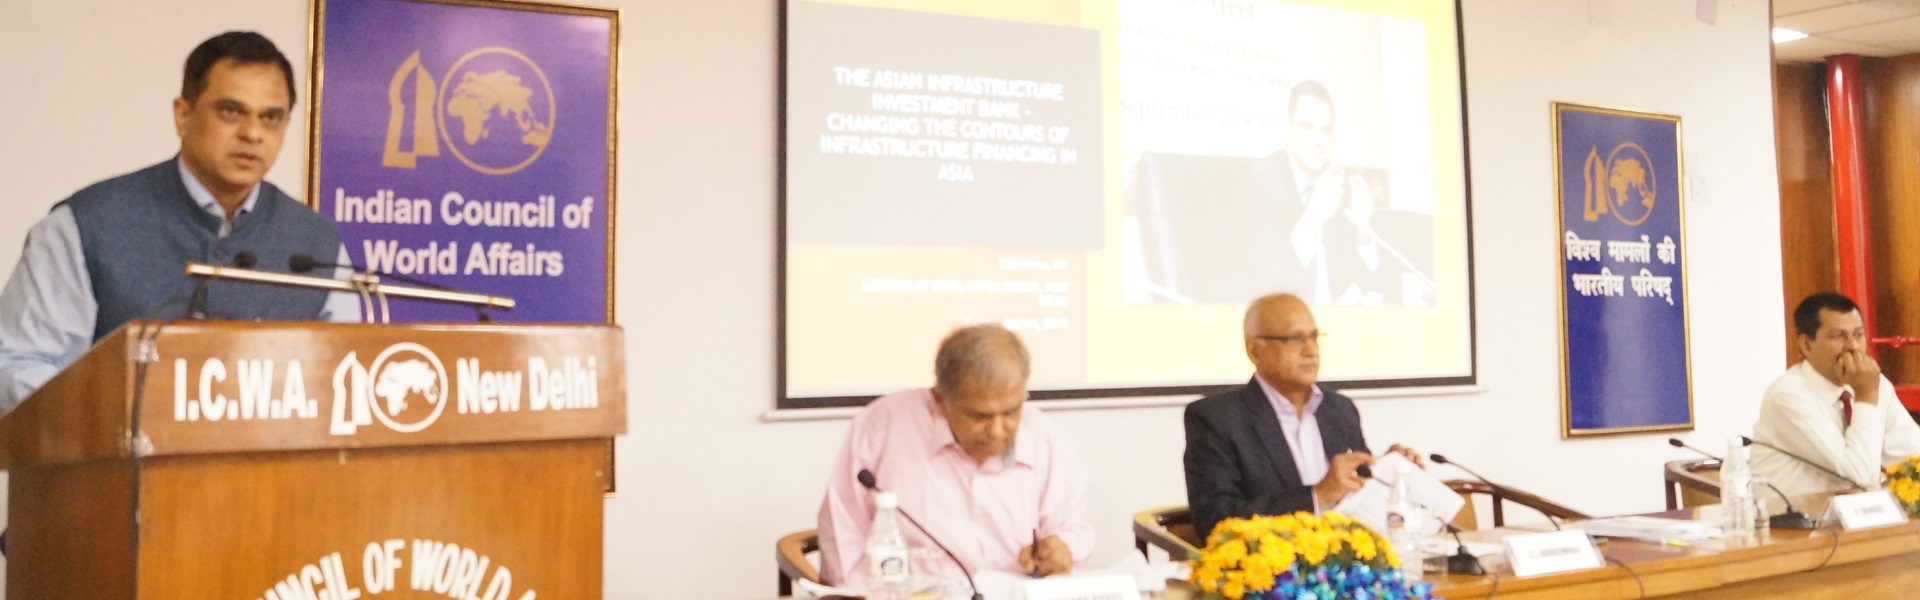 Shri V. Srinivas, IAS, Additional Secretary, Department of Administrative Reforms and Public Grievances, Ministry of Personnel, Public Grievances and Pensions, delivering a lecture on Asian Infrastructure Investment Bank - Changing Contours of Infrastructure Financing in Asia at Sapru House, 14 May 2019.